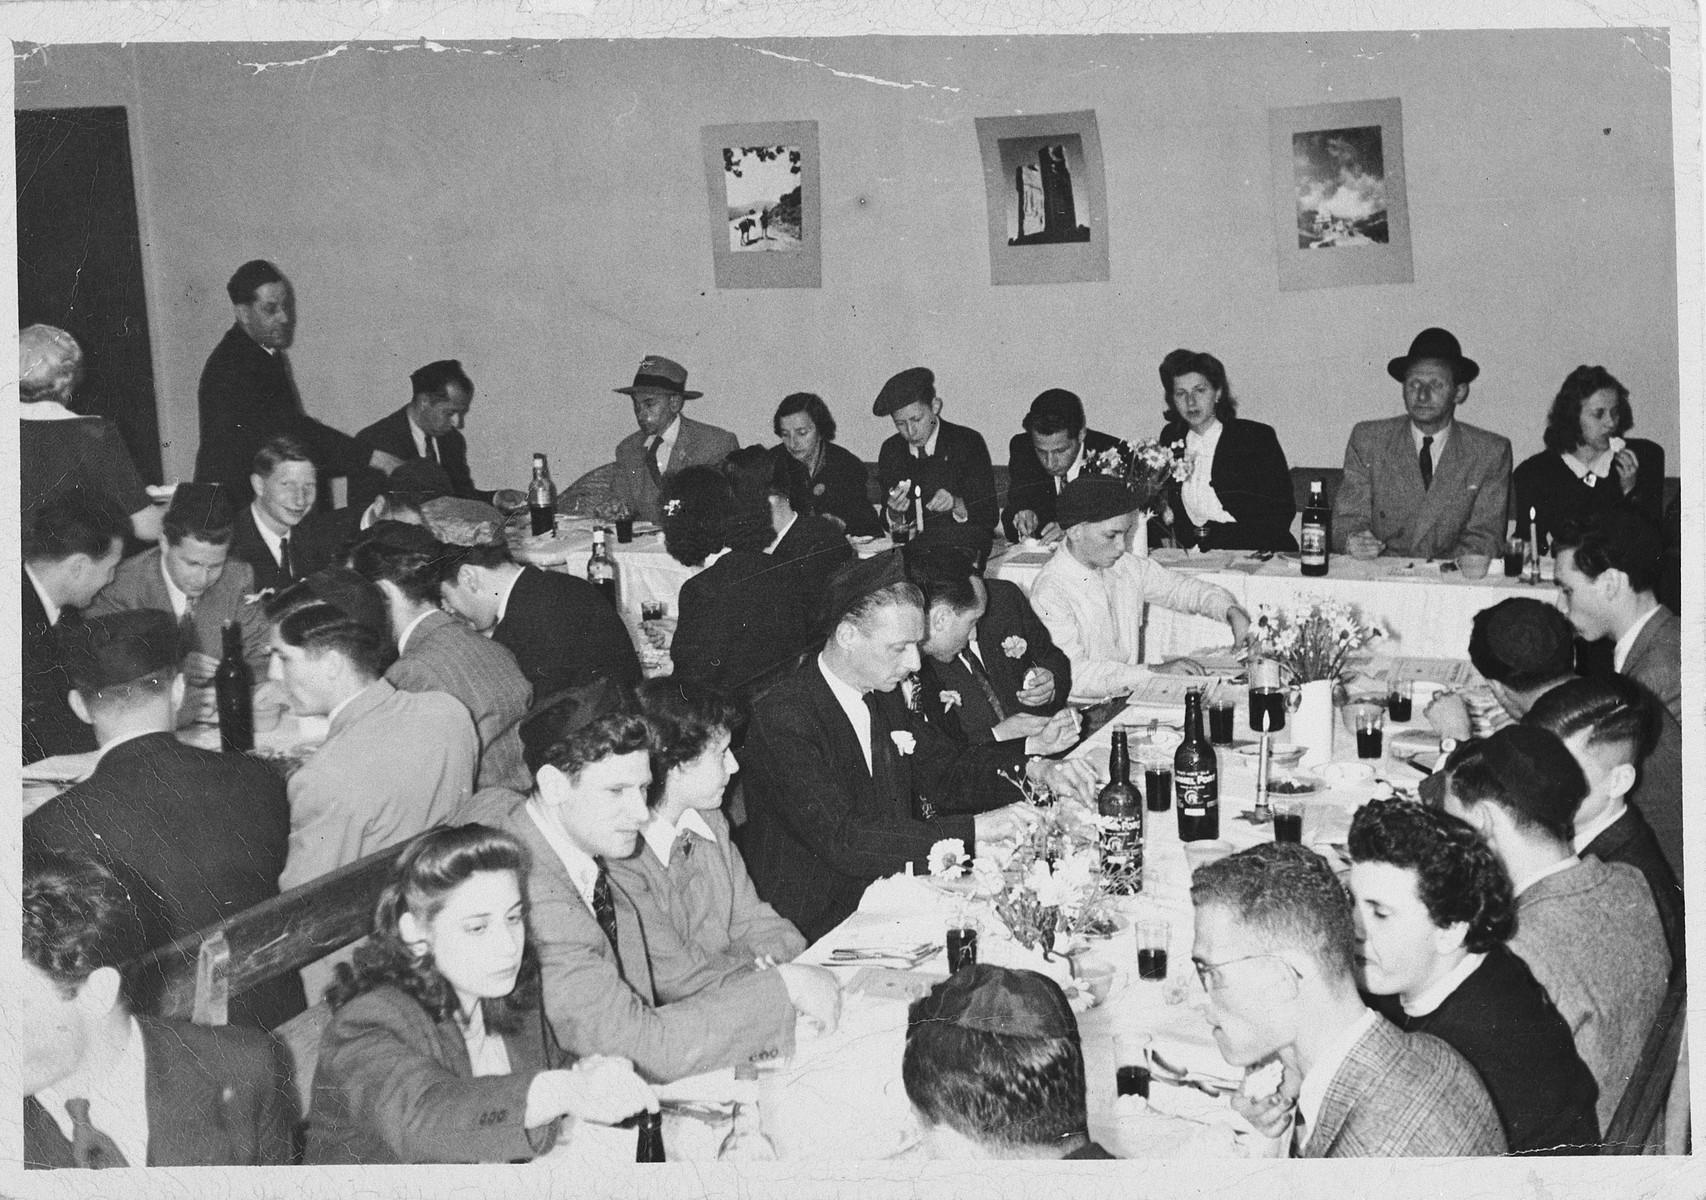 Jewish refugees attend a communal seder in Shanghai.  Alfred Brosan is pictured third from the left in the center row.